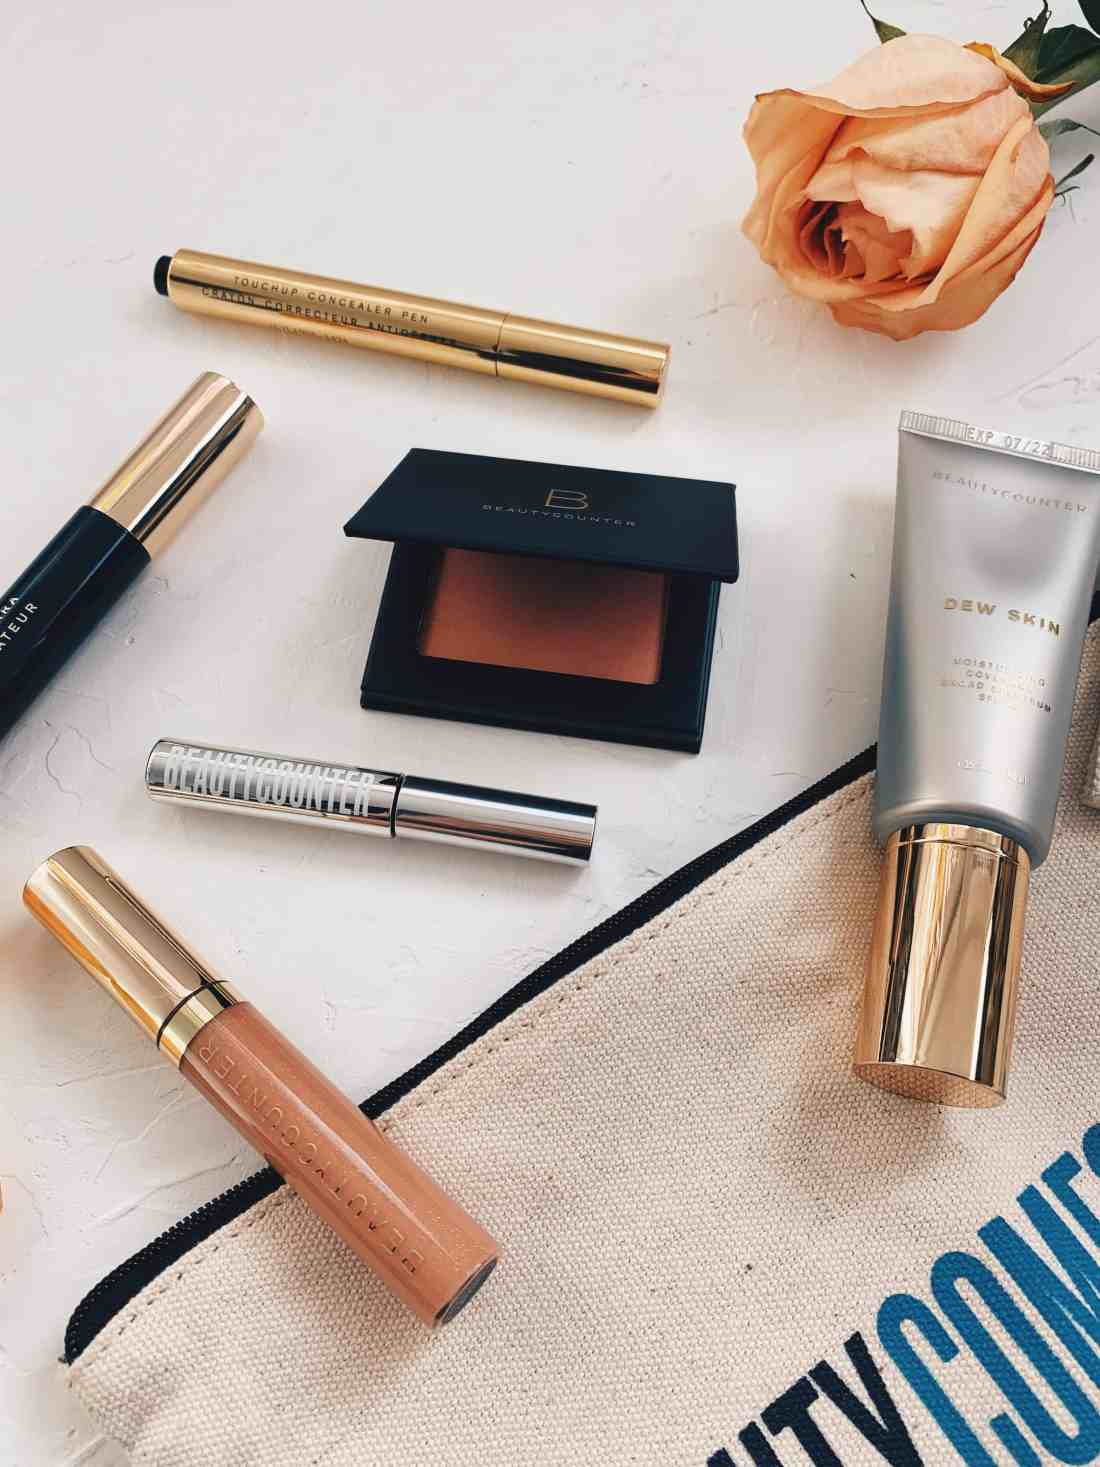 Beautycounter Flawless in Five Review, including their Dew Skin Tinted Moisturizer, Satin Blush, Mascara, Lip Gloss, Touchup Concealer, & Brow Gel!